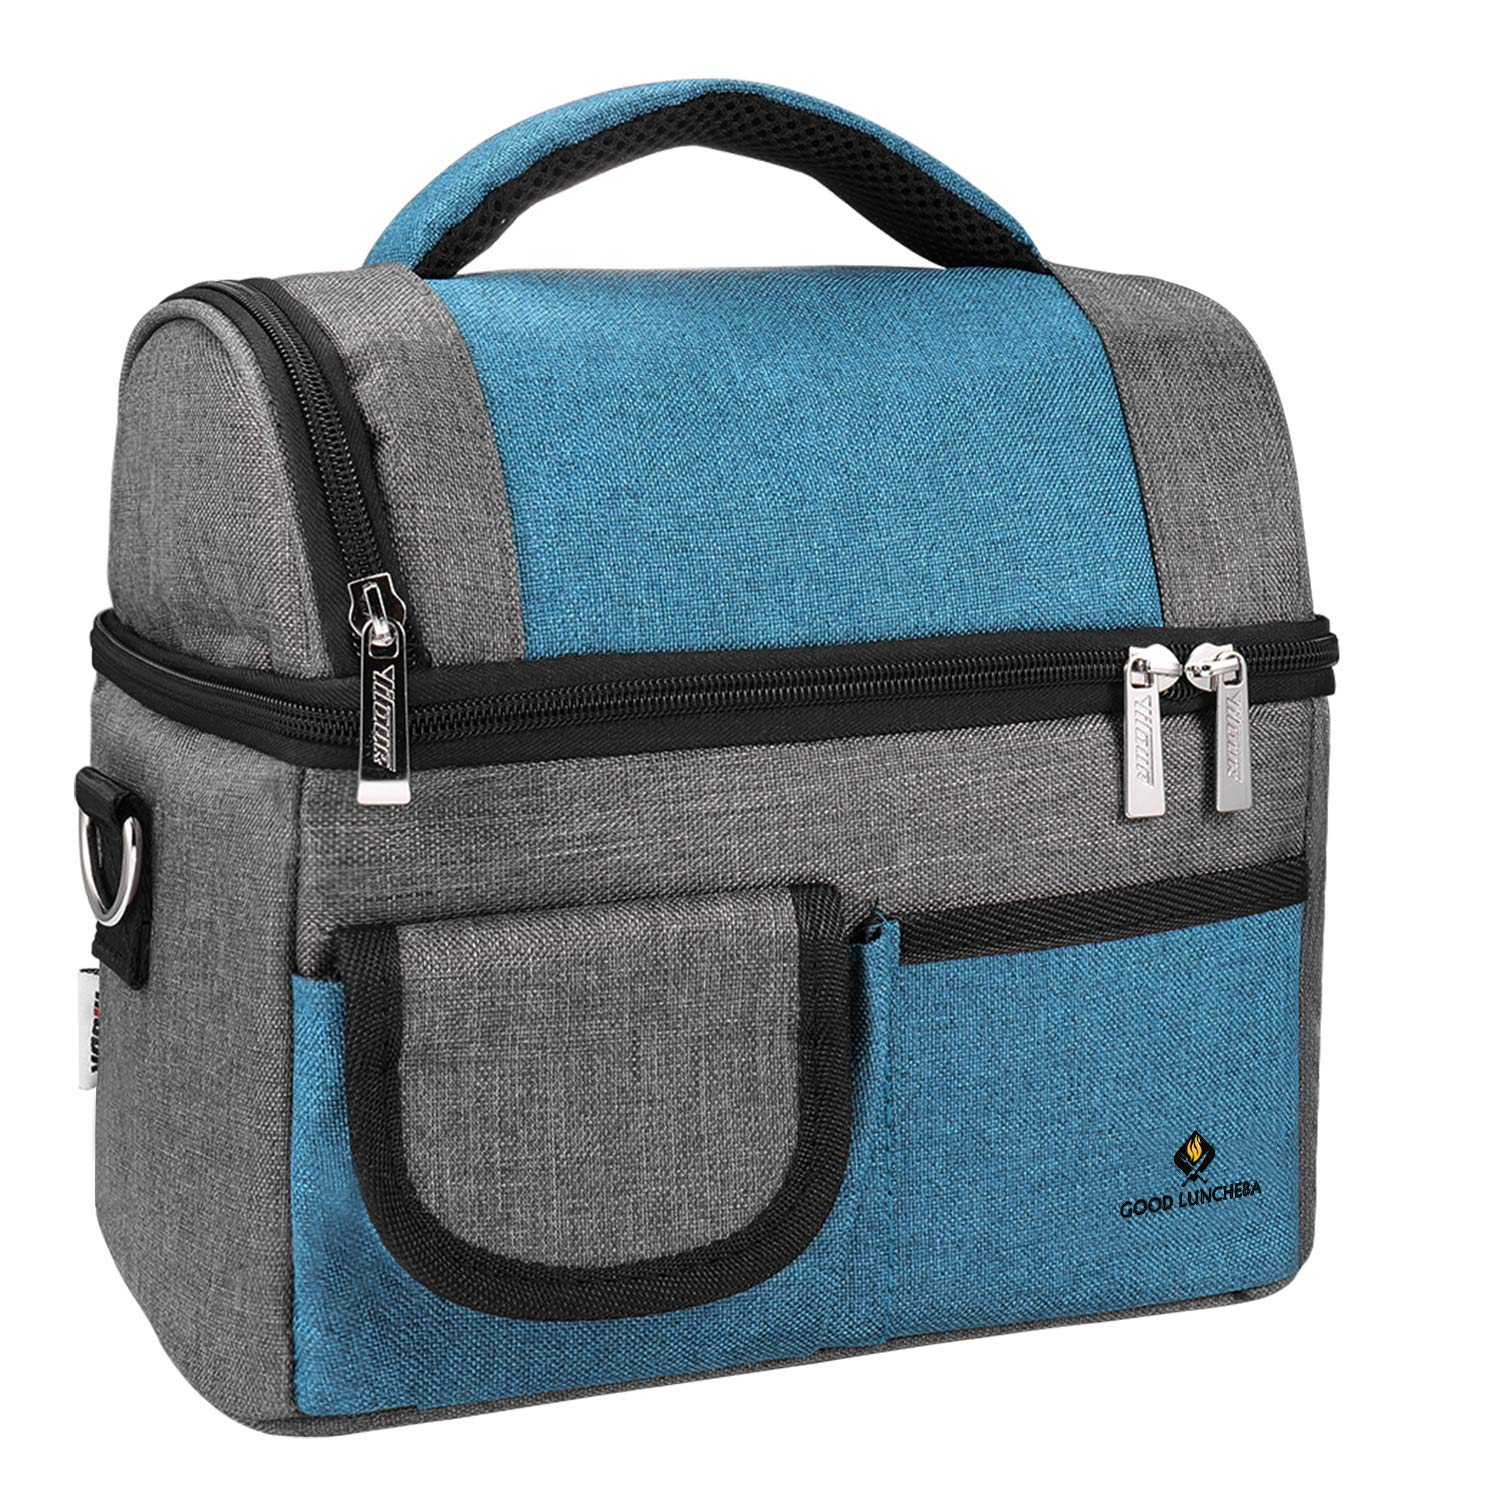 Large Lunch bags - Waterproof Insulated Lunch Bag - Cooler Tote lunch bags for women, Men with Double Deck Cooler